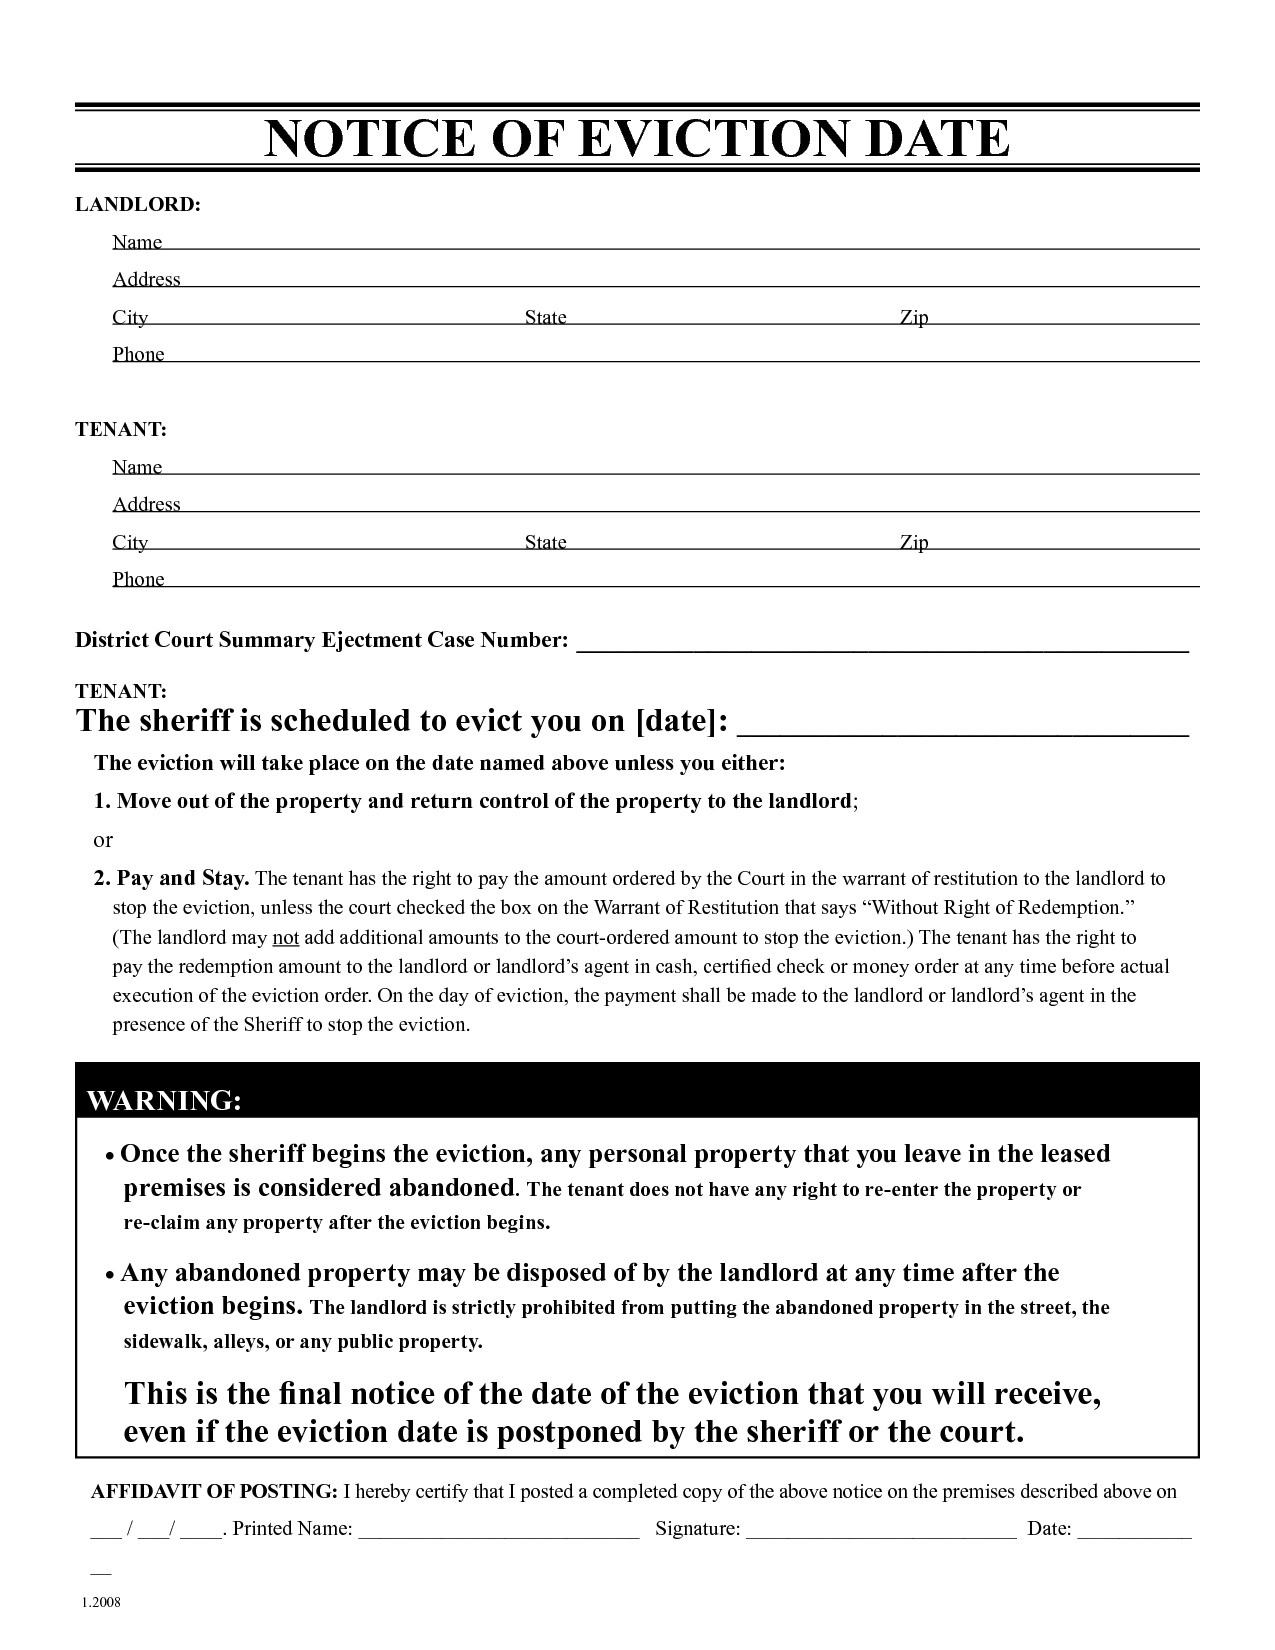 Eviction Letter Template Free - Free Eviction Notice form New Free Printable Eviction Notice